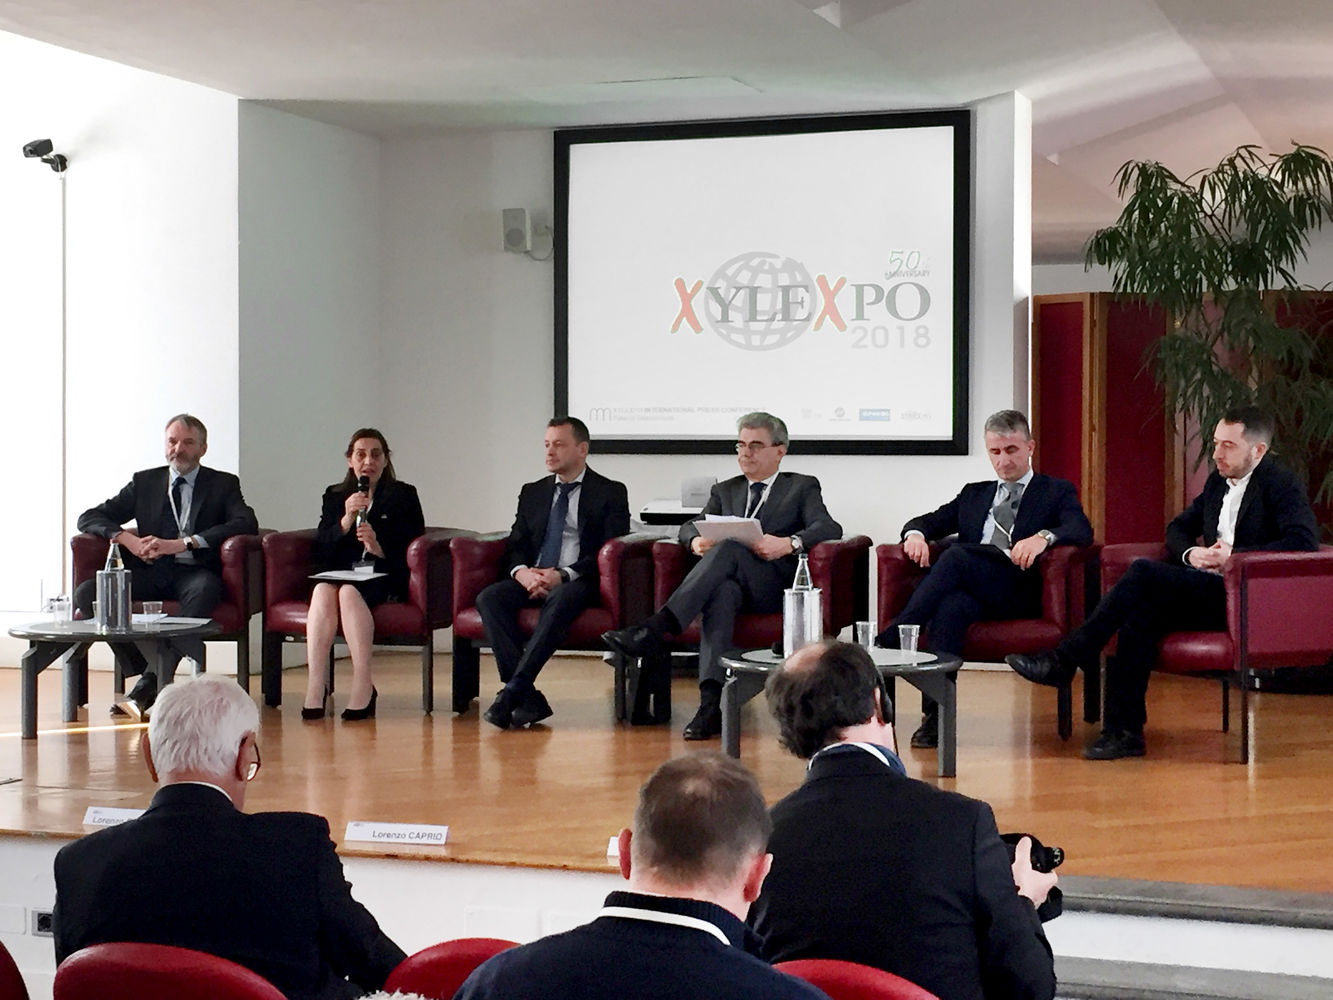 SCM at the Xylexpo International Press Conference